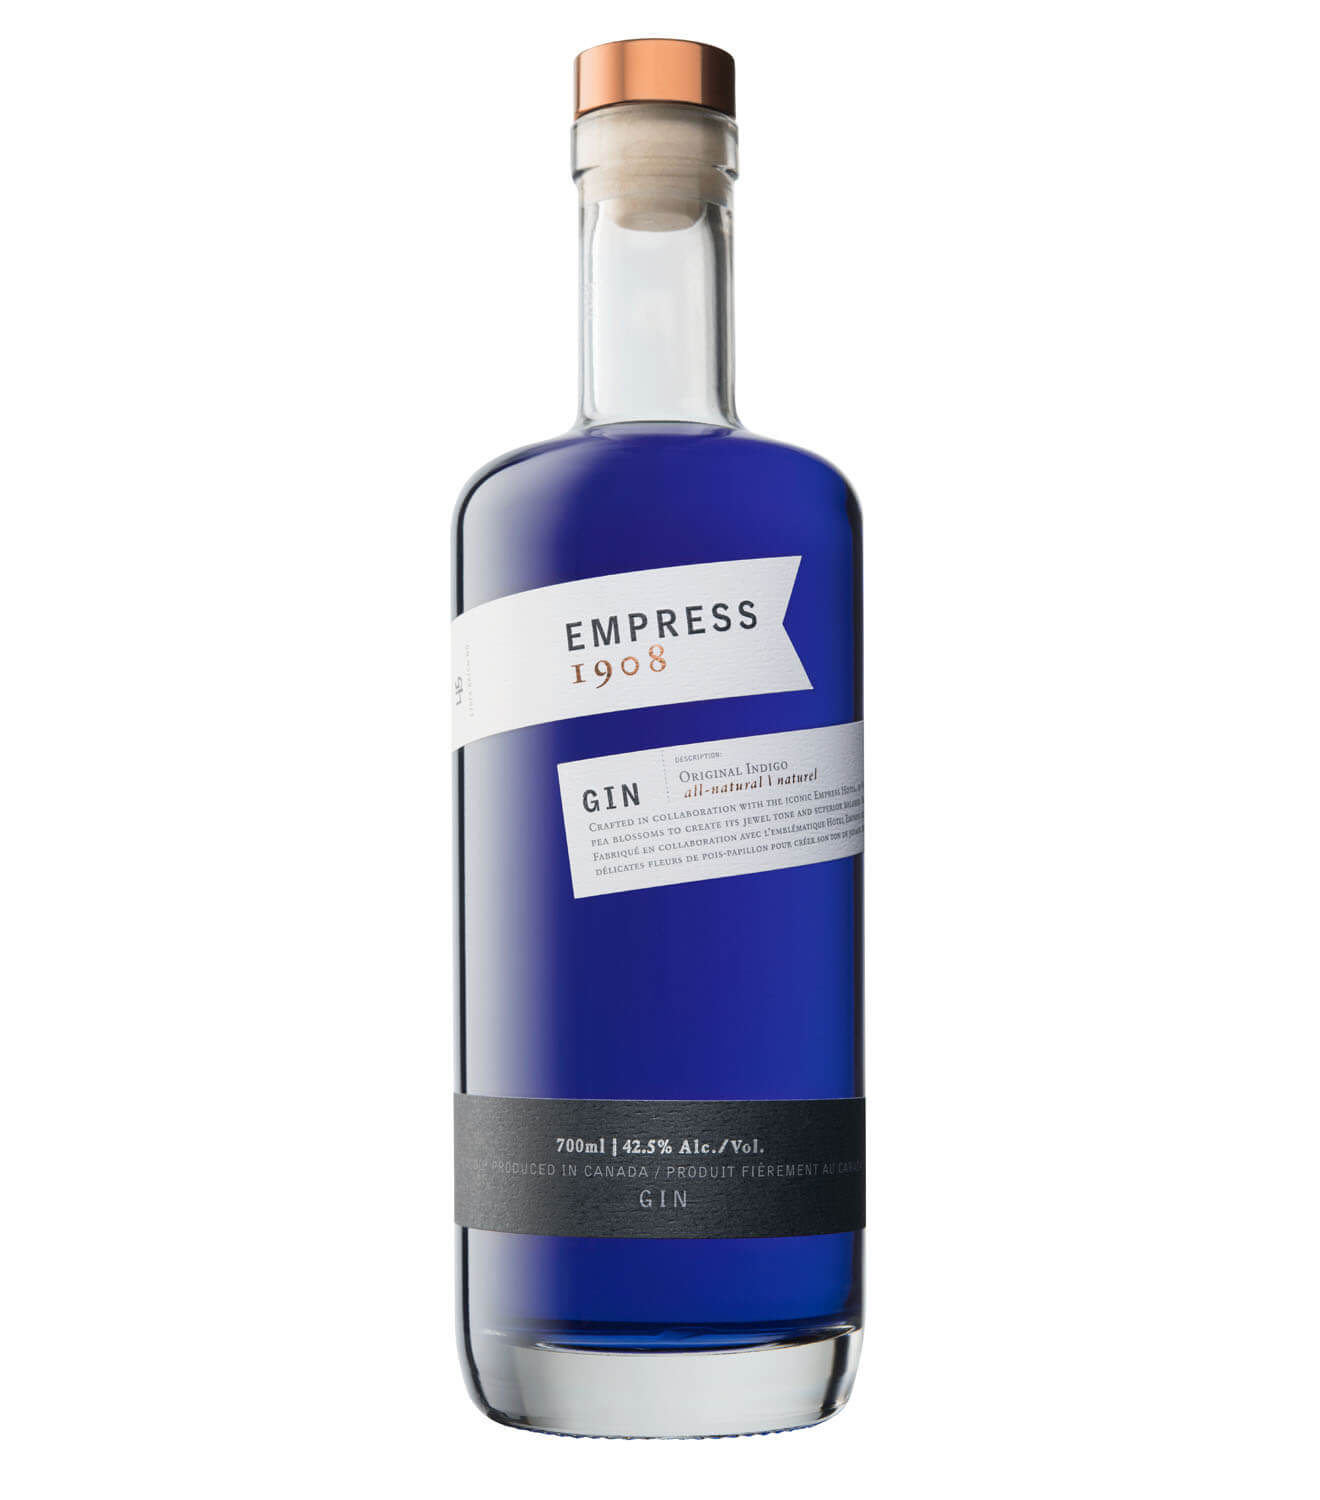 Empress 1908 Gin, bottle on white